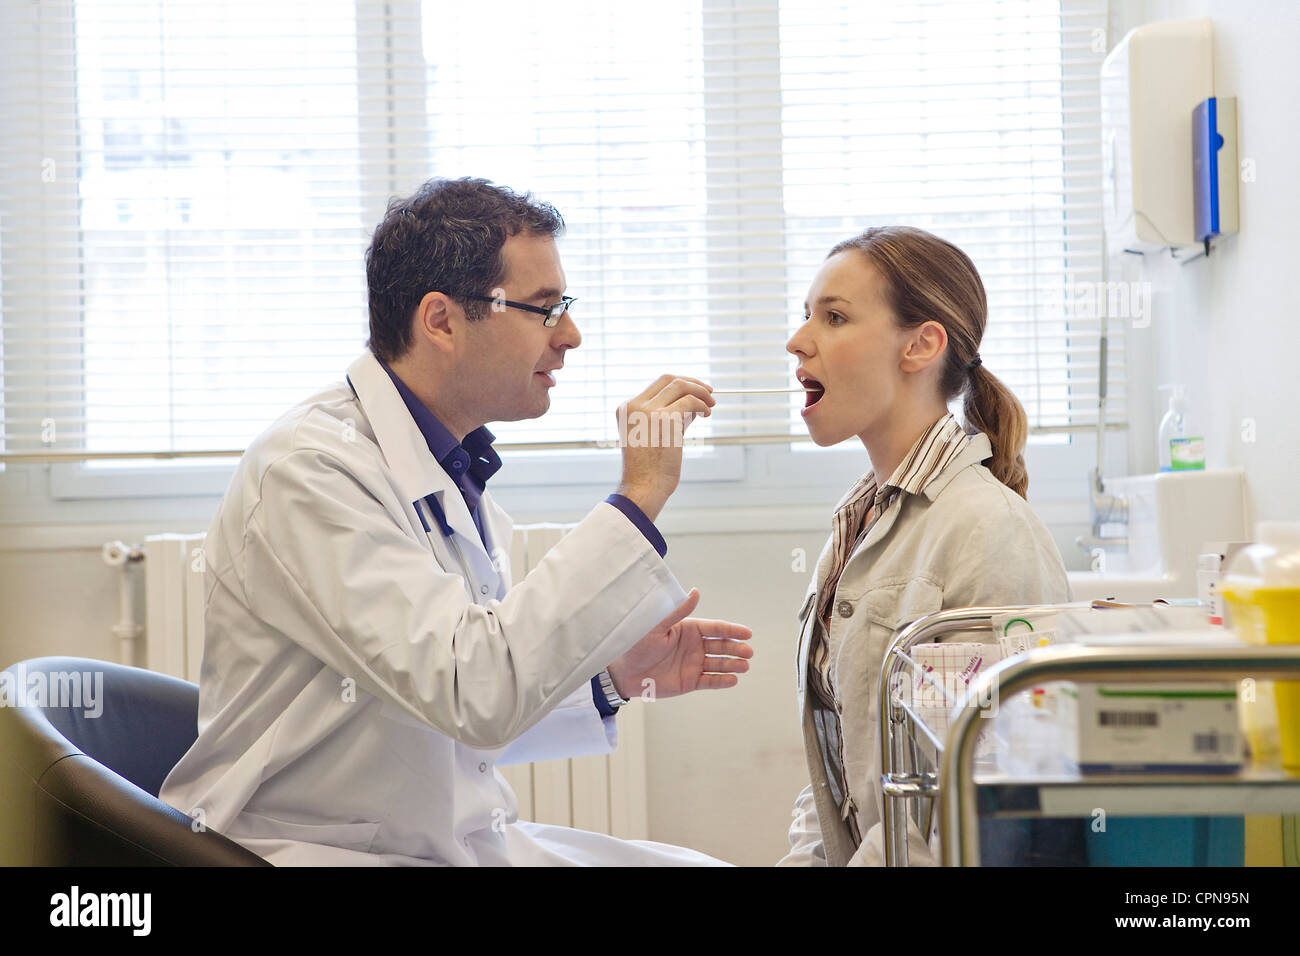 EAR NOSE & THROAT, WOMAN - Stock Image